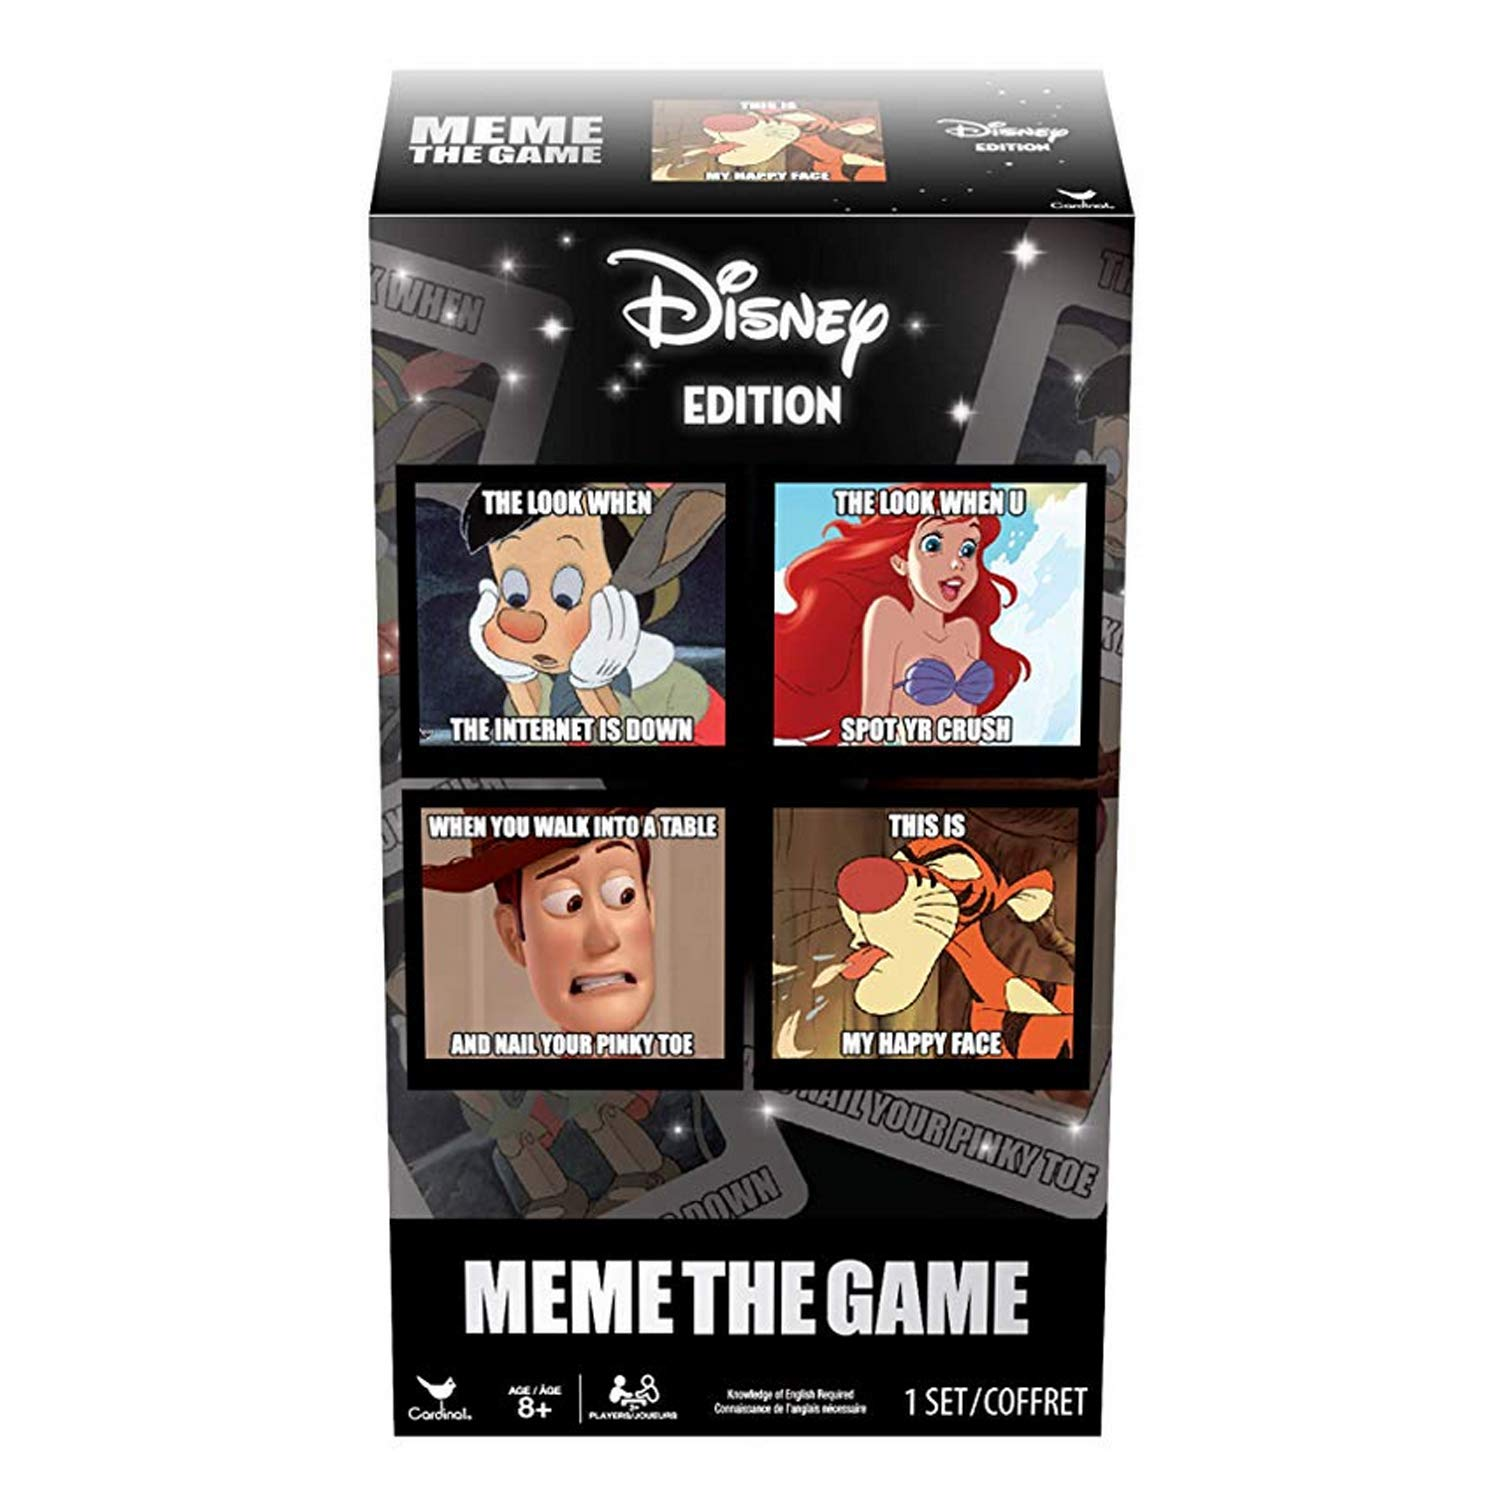 The Disney Meme Game